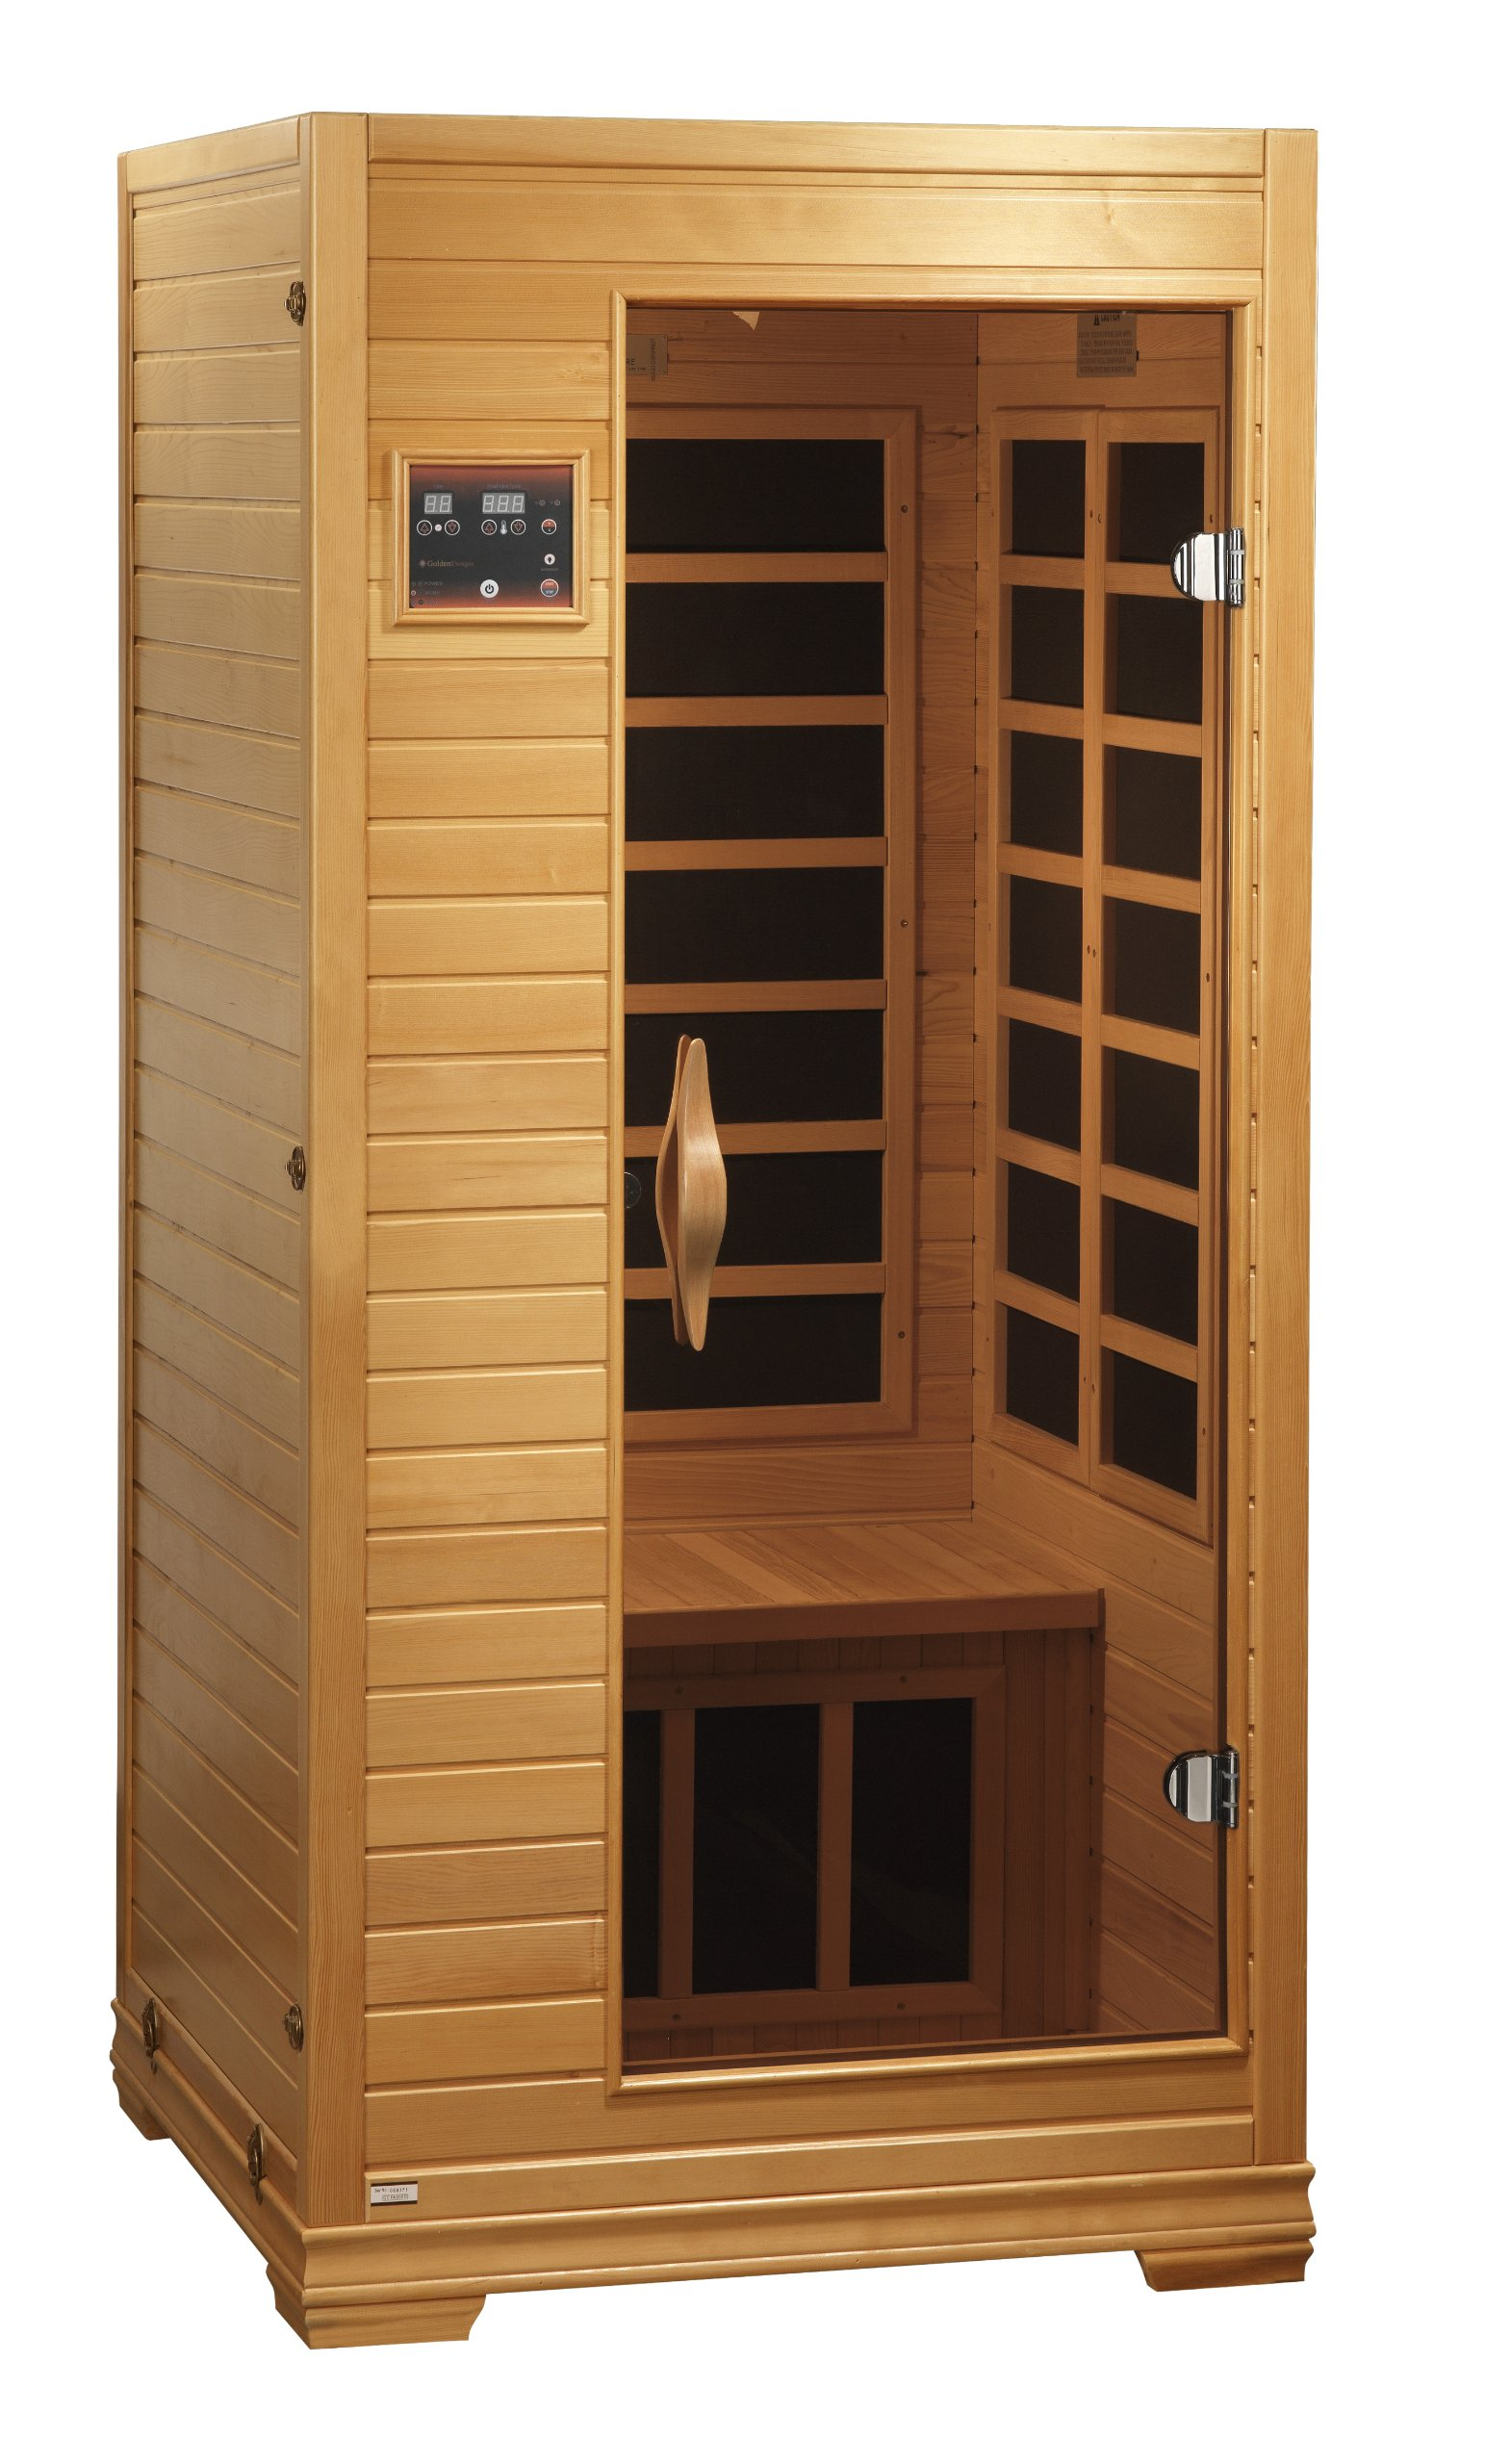 BetterLife BL6109 1-2 Person Carbon Infrared Sauna with ChromoTherapy Lighting, Natural Hemlock Wood Finish